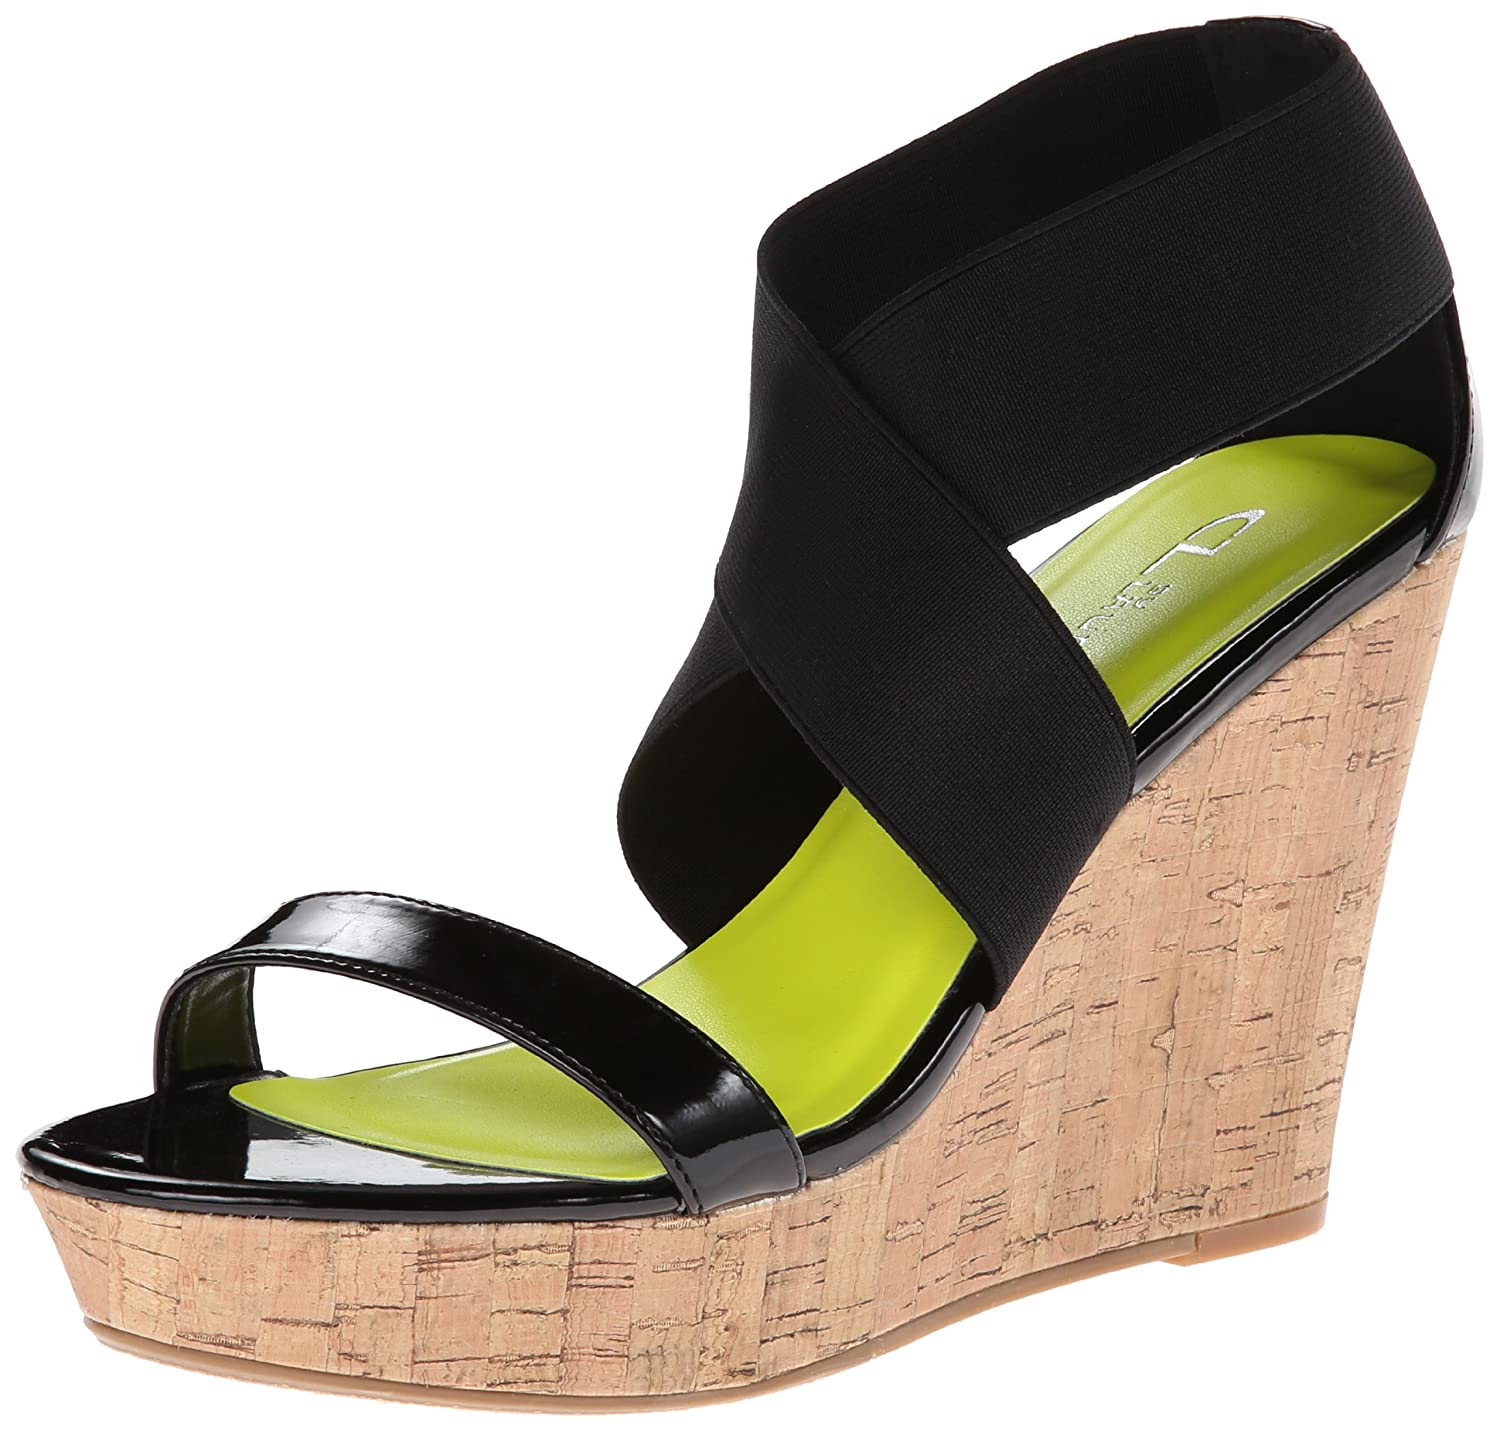 CL by Chinese Laundry Women's Idelle Patent-Gor Wedge Sandal